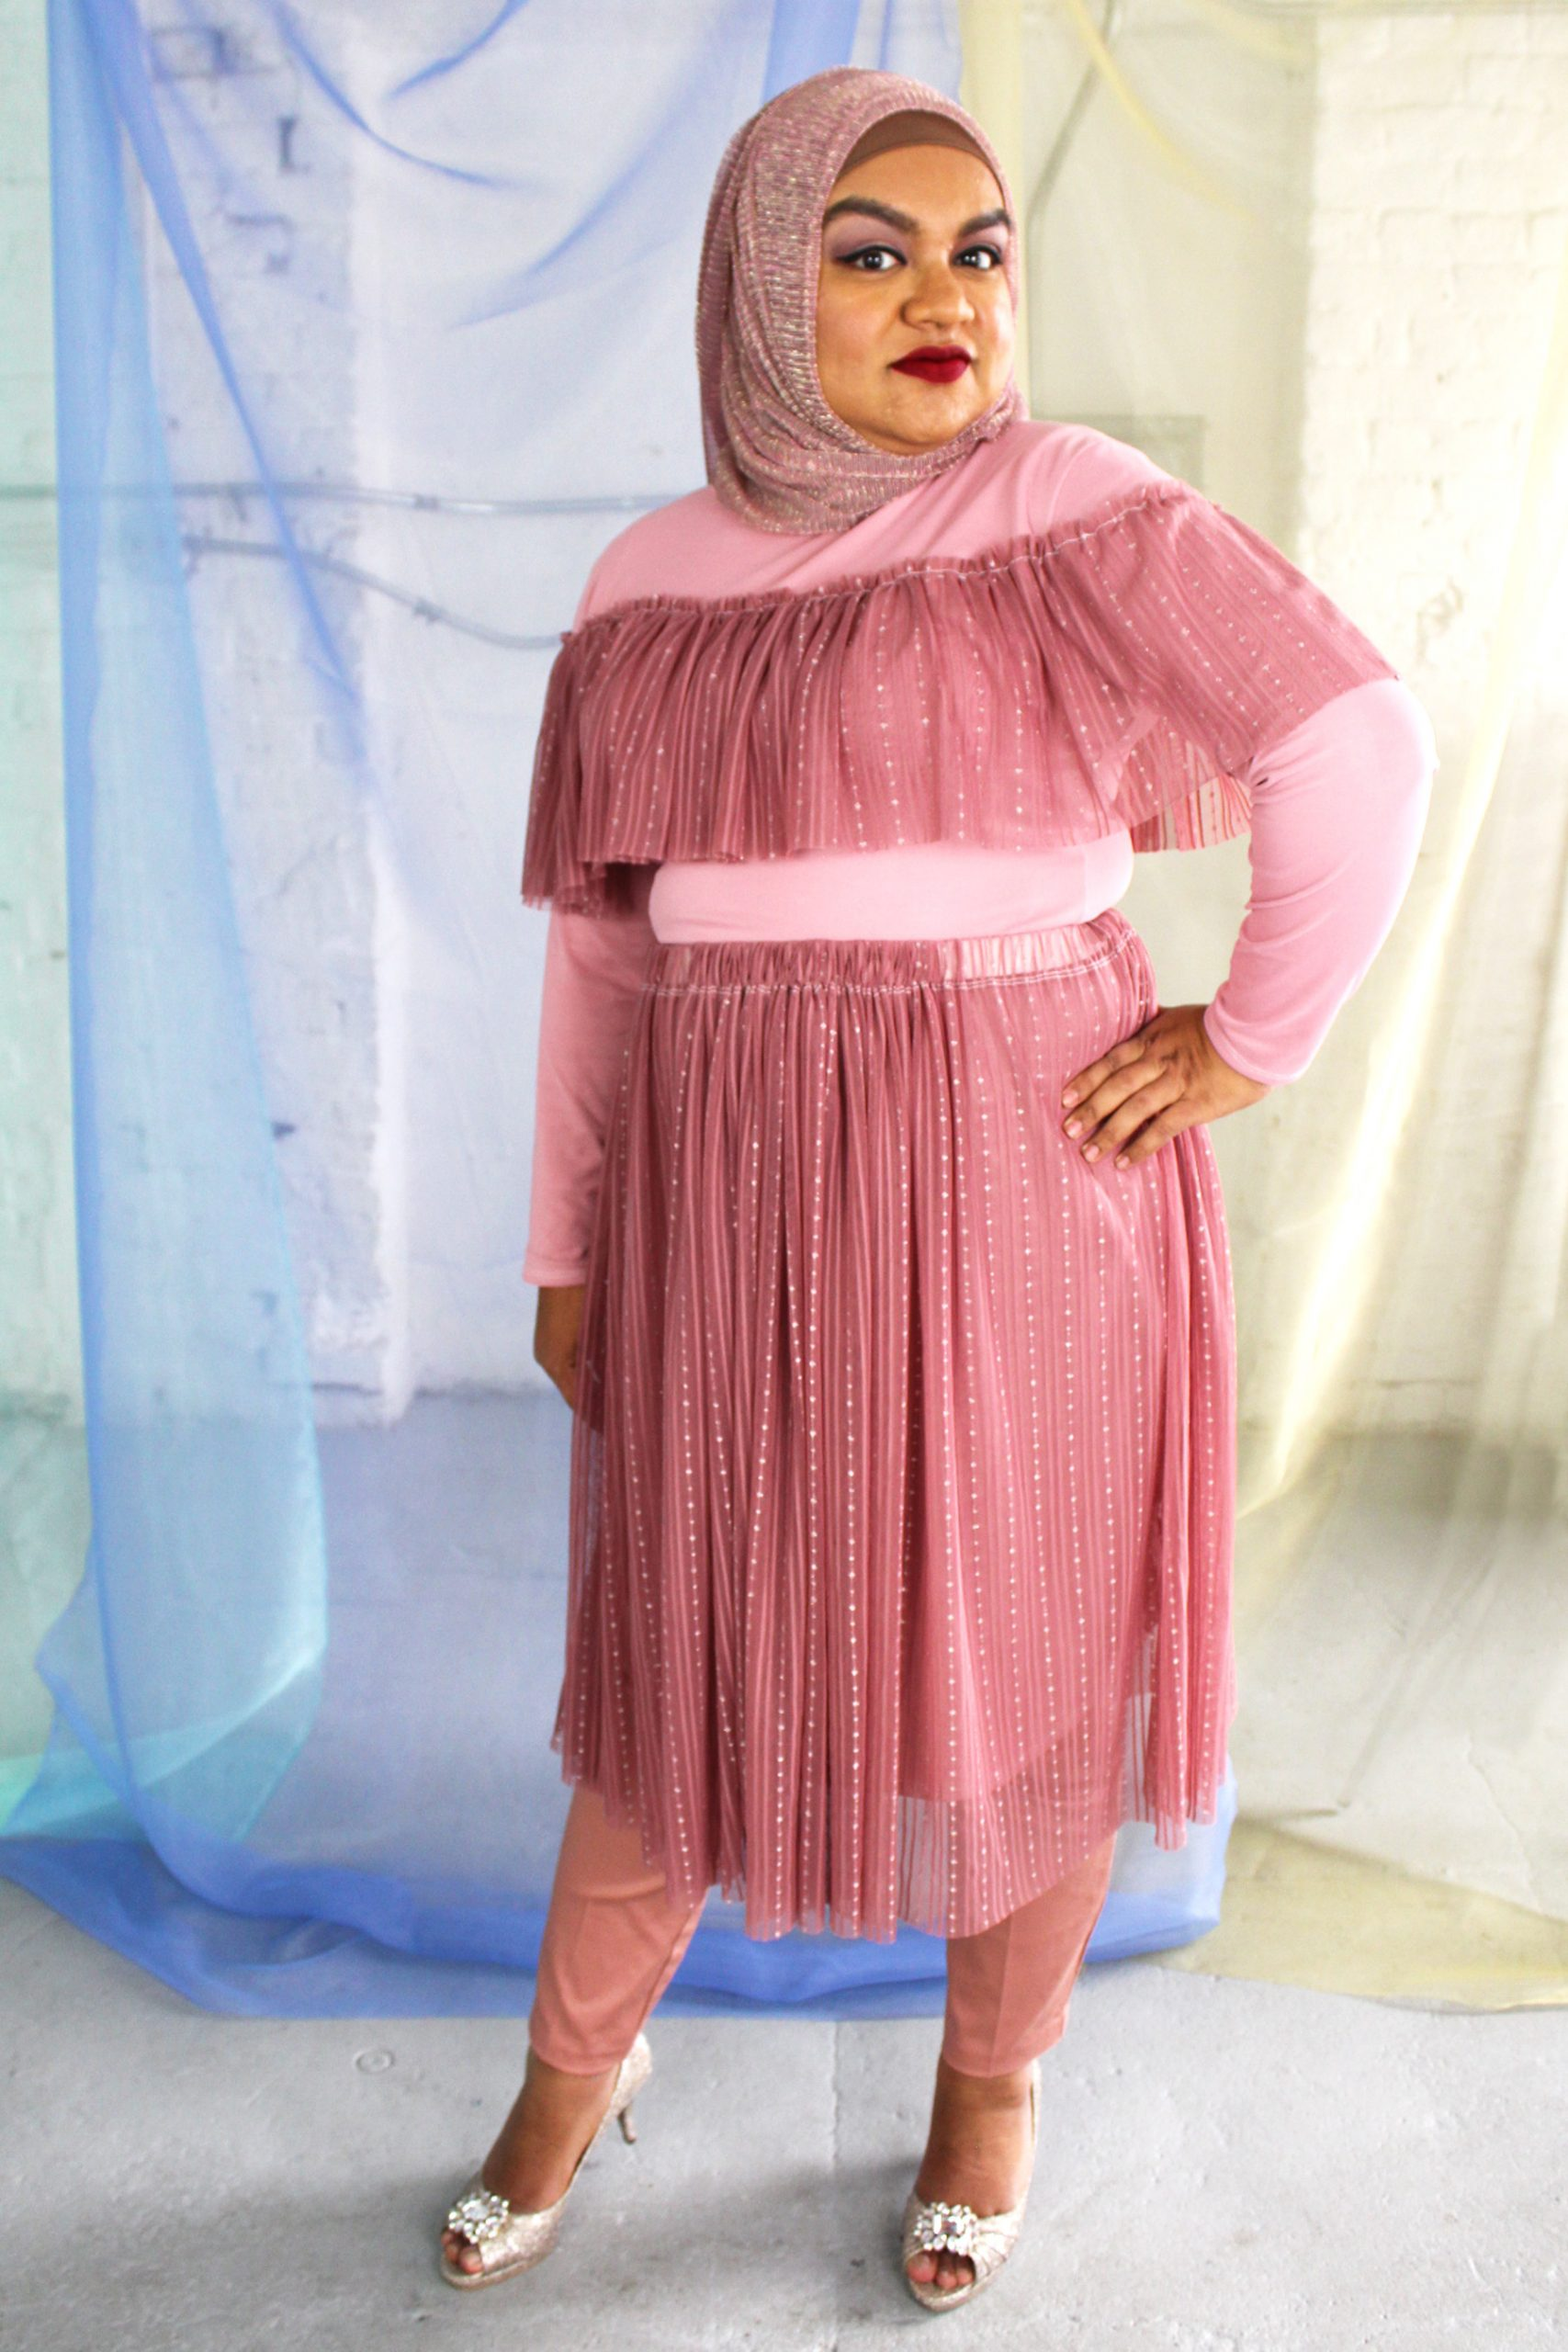 Hijabi plus size model wearing dusty rose pink mesh high neck long sleeved top with ruffle and matching skirt